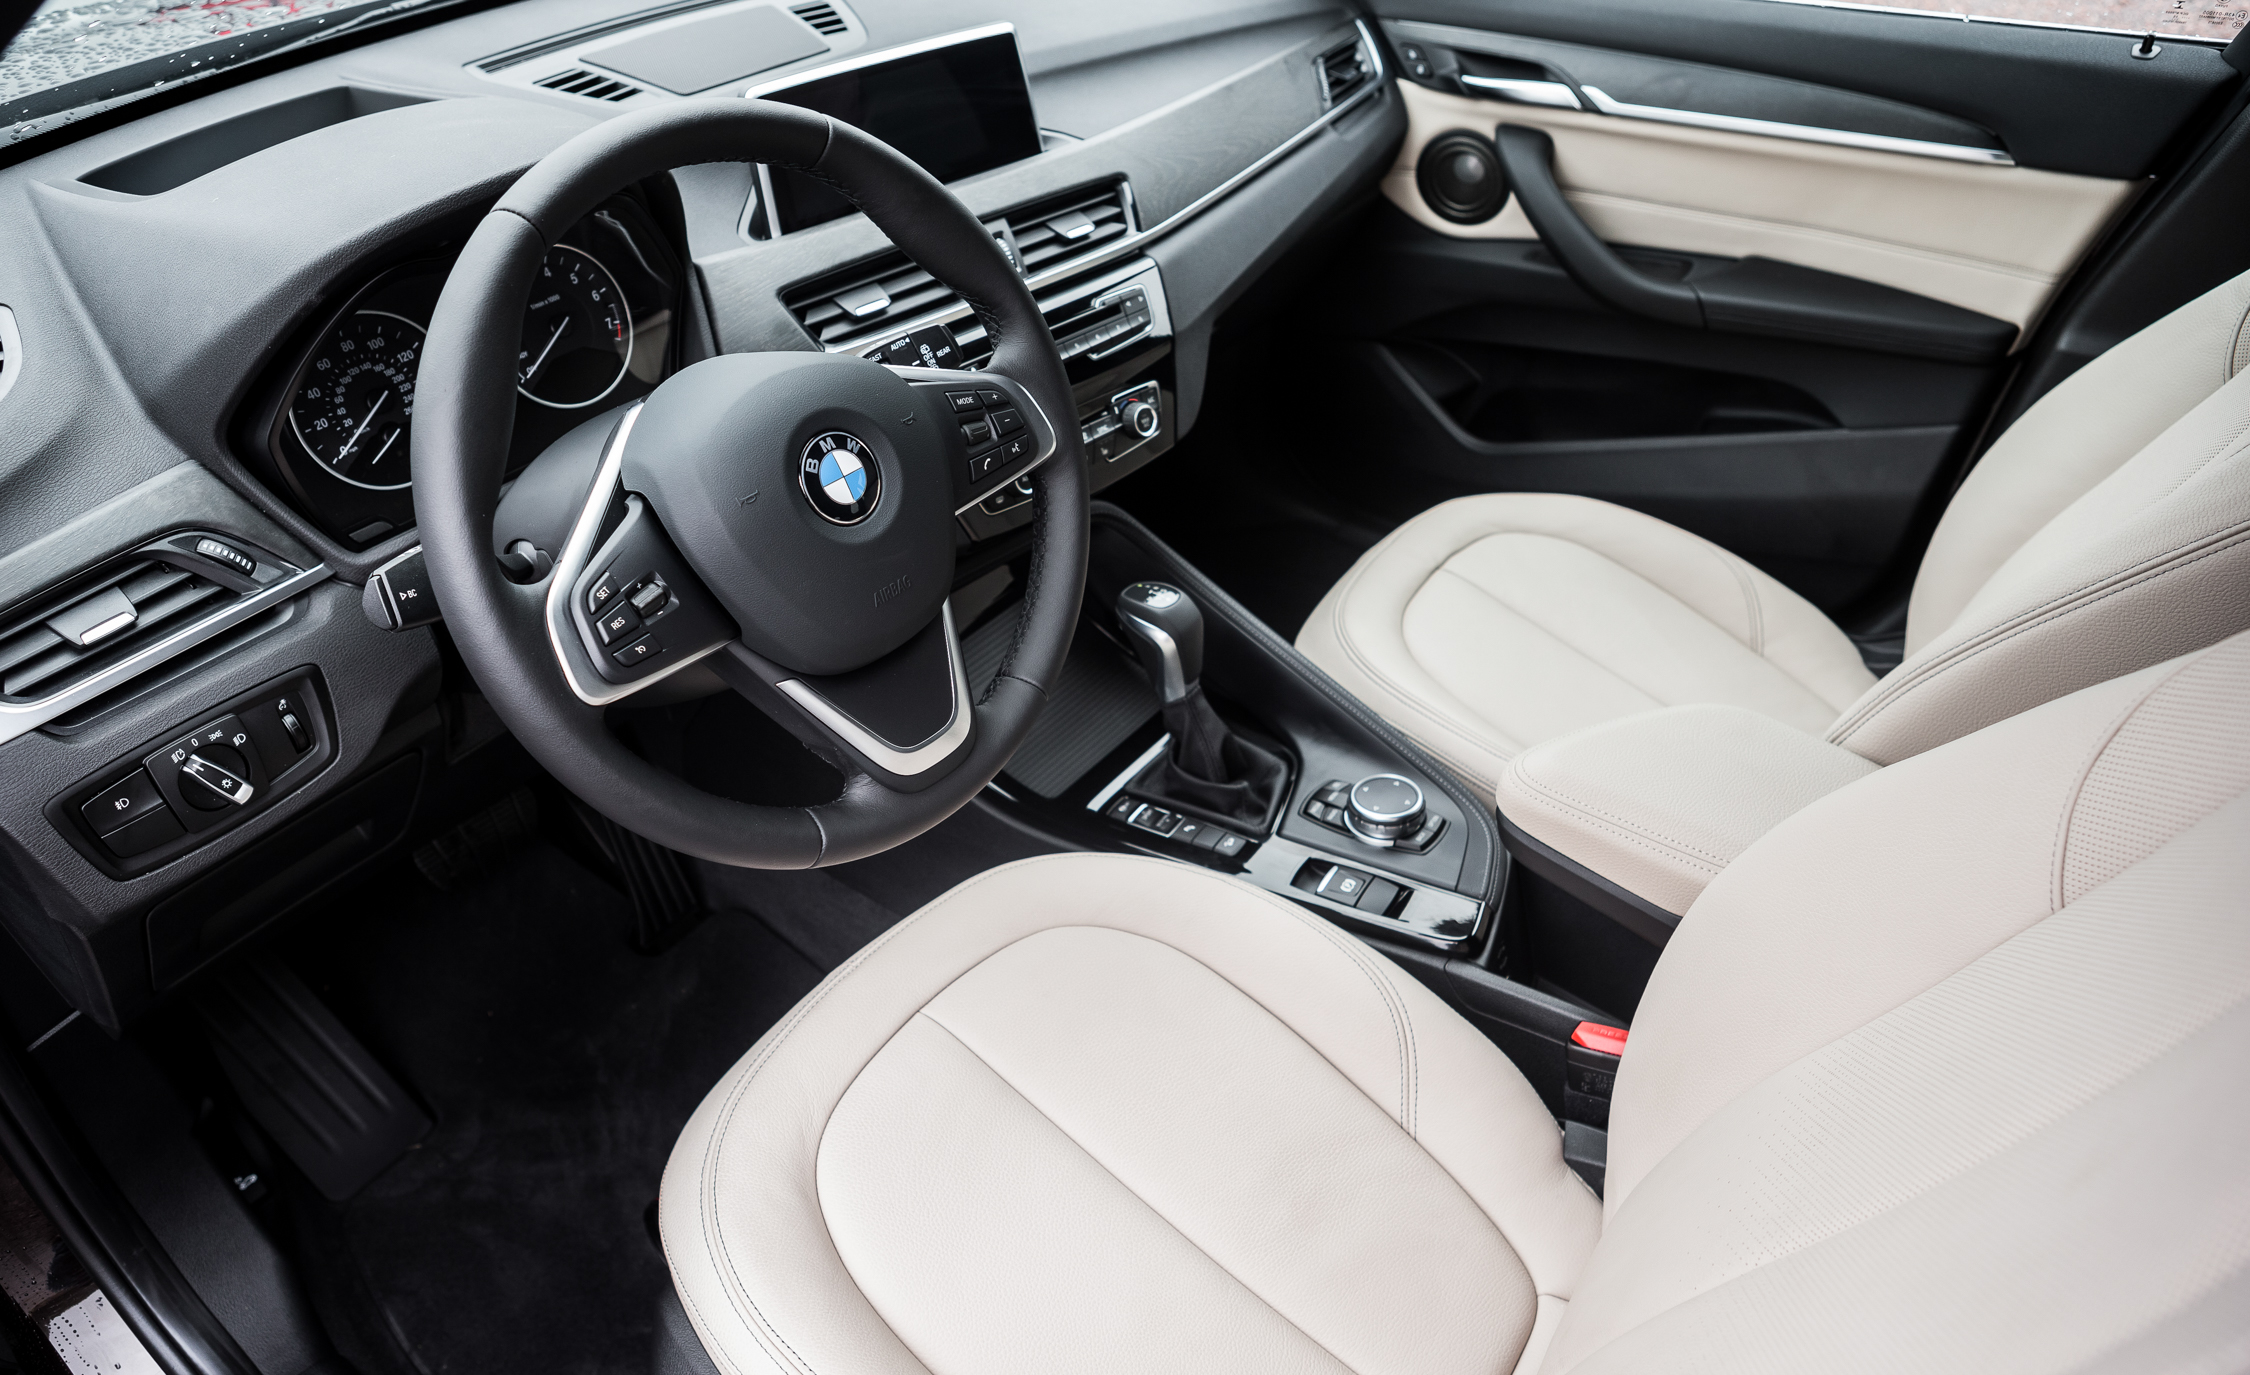 2016 BMW X1 Interior Driver Cockpit Steering (Photo 24 of 36)